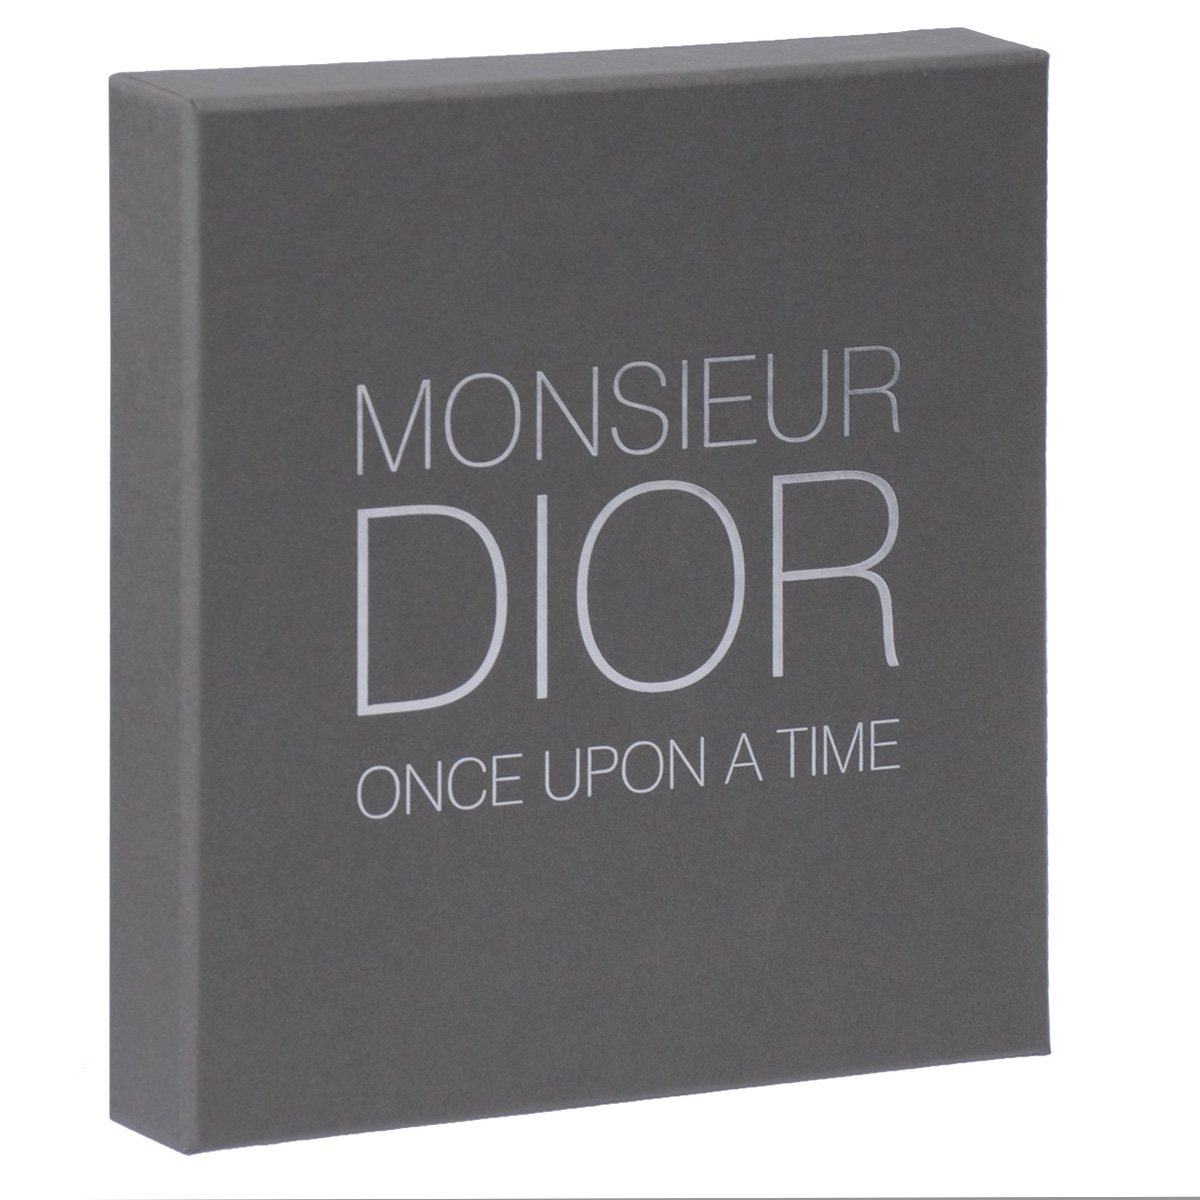 Monsieur Dior: Once Upon a Time (подарочное издание) sephora collection once upon a look палетка теней once upon a look палетка теней